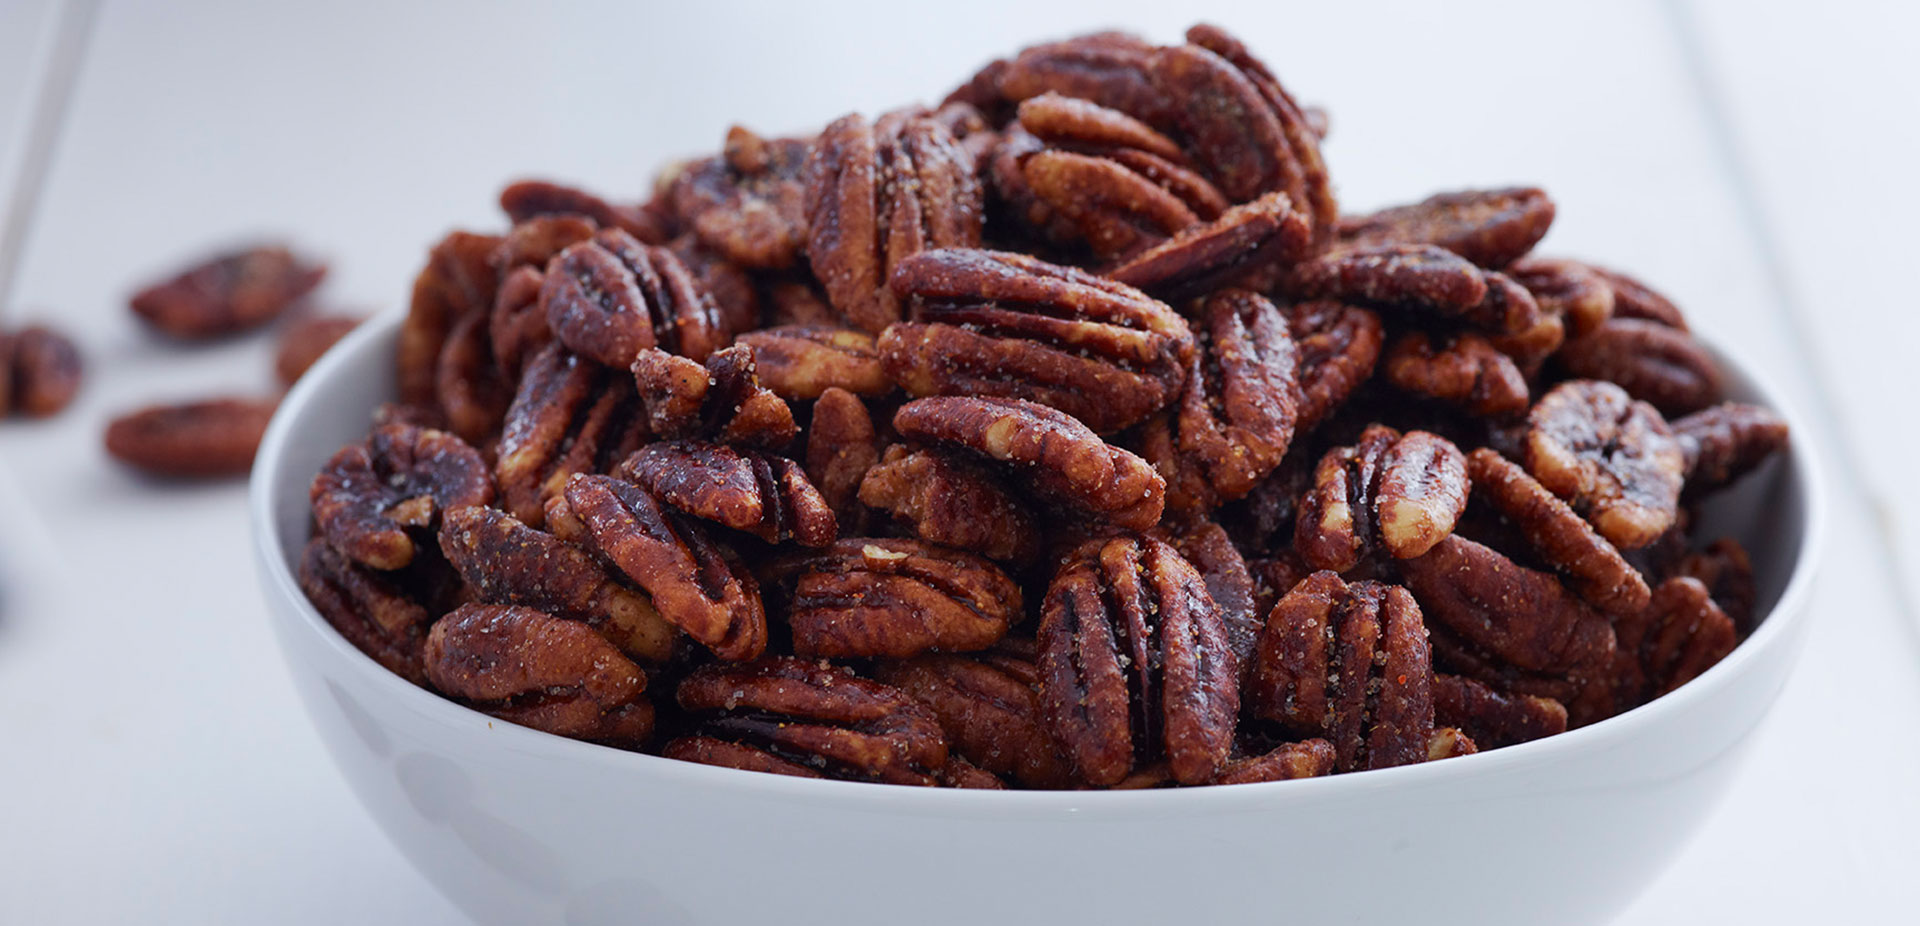 Sweet & Spicy Glazed Pecans